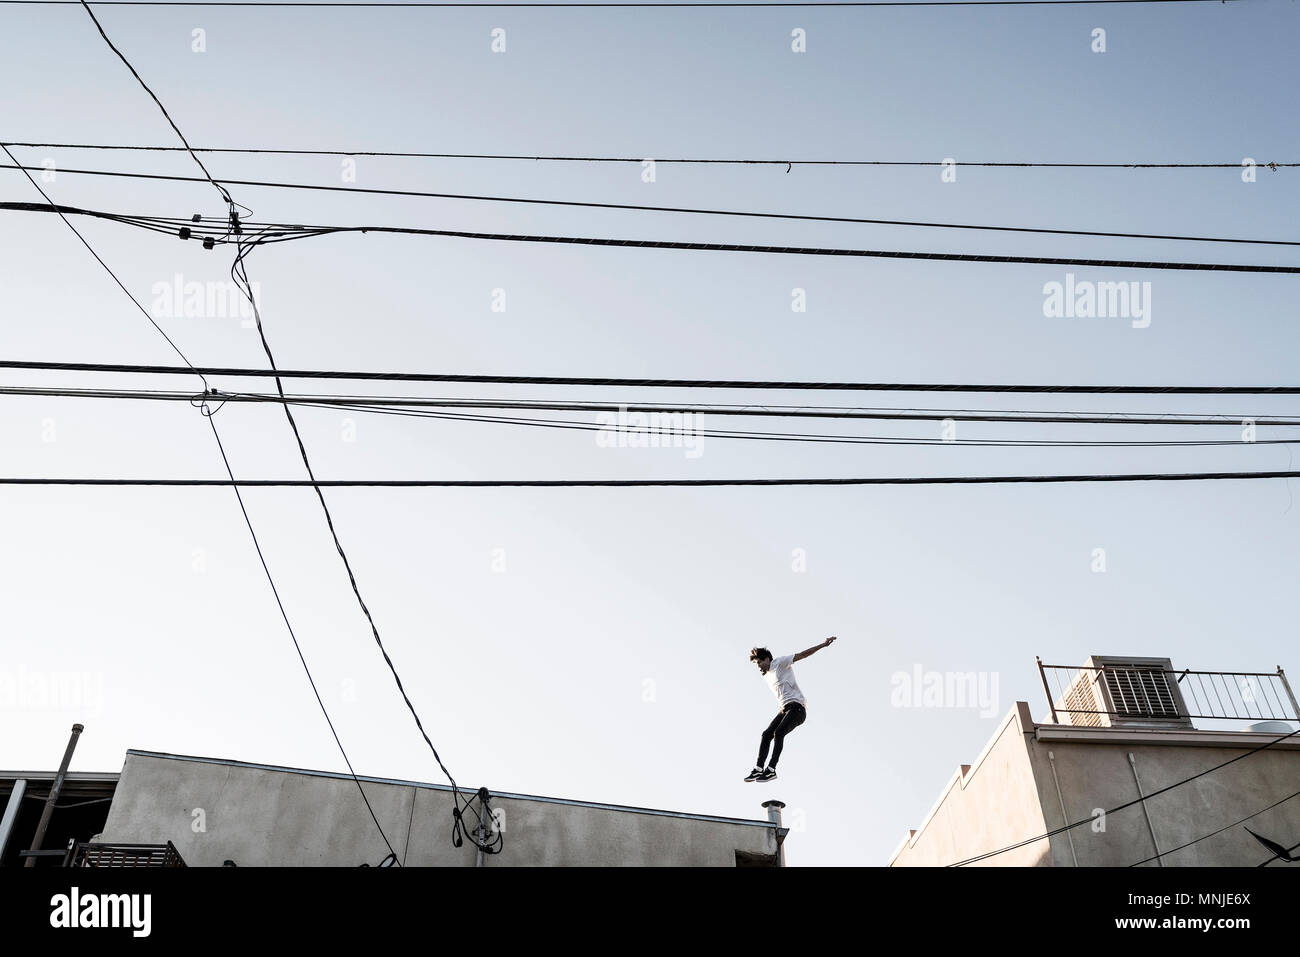 Side view of parkour athlete in mid-air while jumping between rooftops, Denver, Colorado, USA - Stock Image